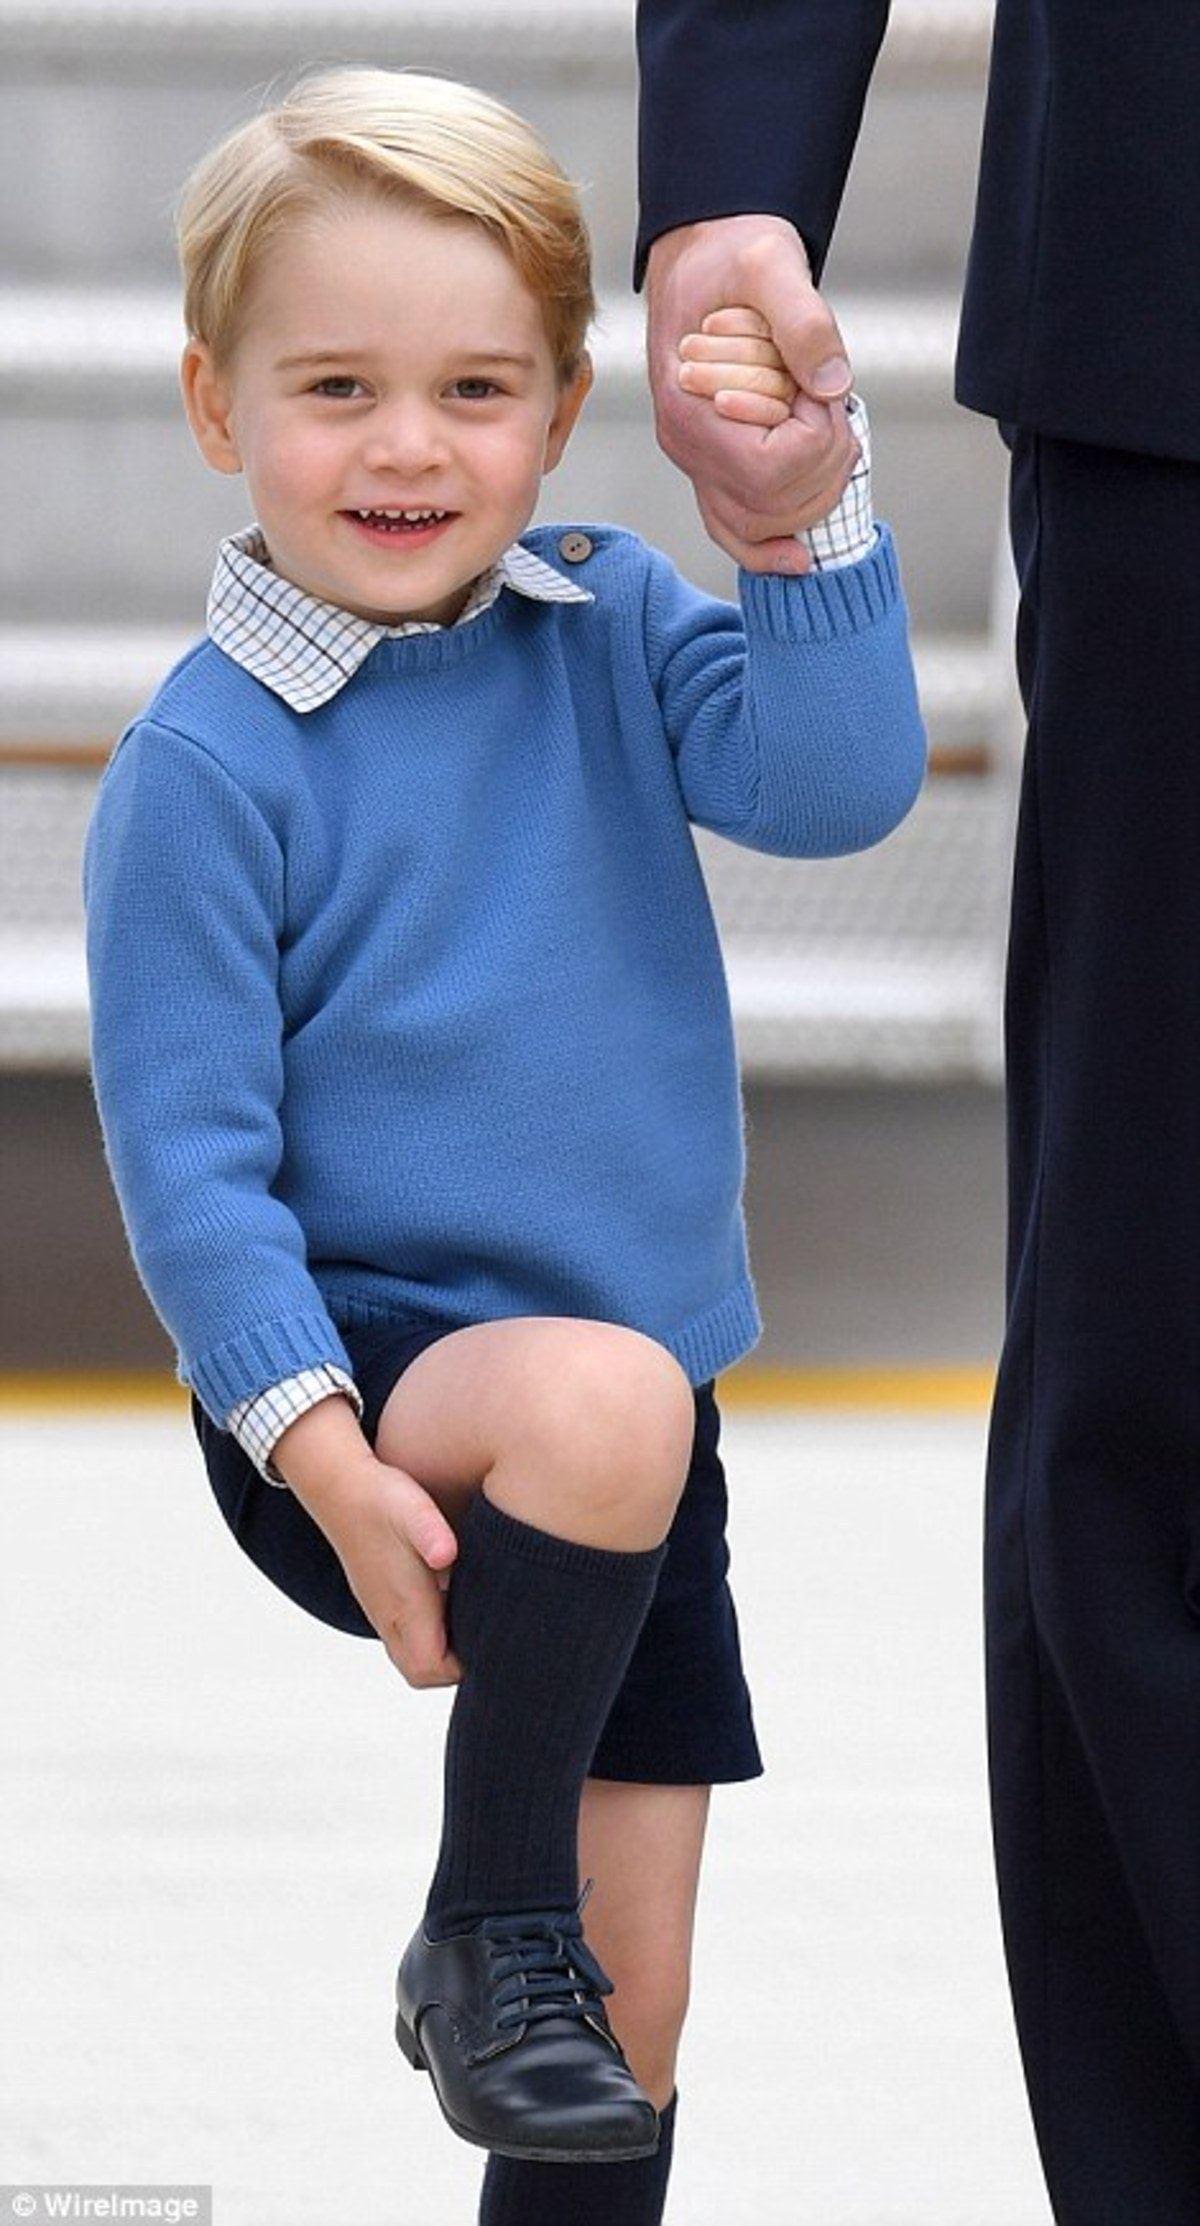 38C378EA00000578-3805952-Prince_George_was_wearing_a_blue_jumper_with_blue_shorts_and_kne-a-11_1474773202088